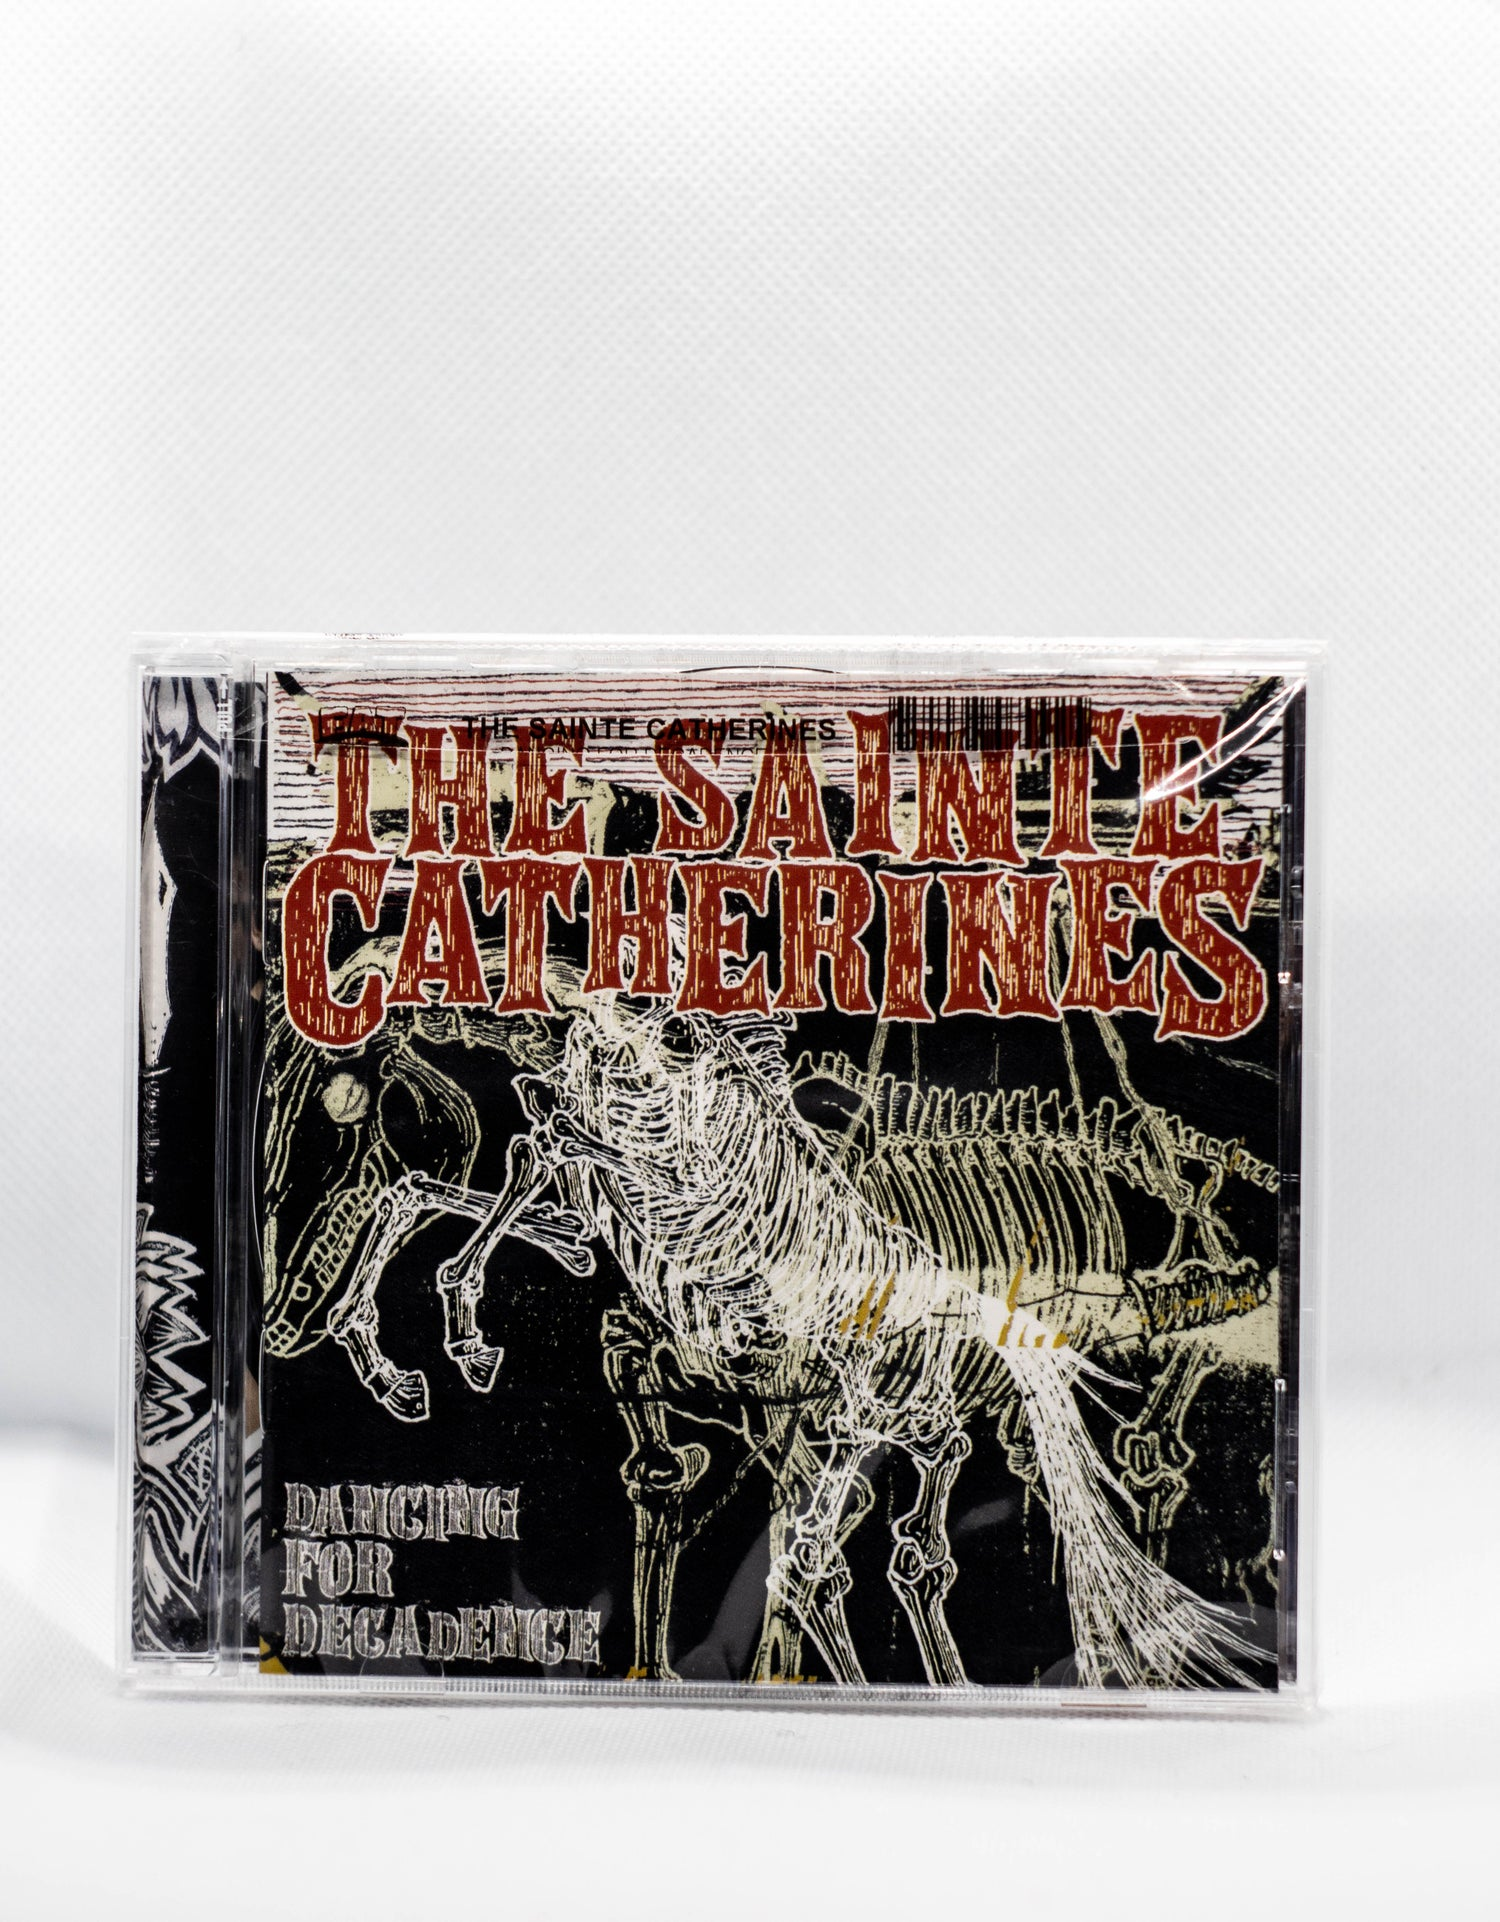 Image de The Sainte Catherines - Dancing for Decadence [CD]